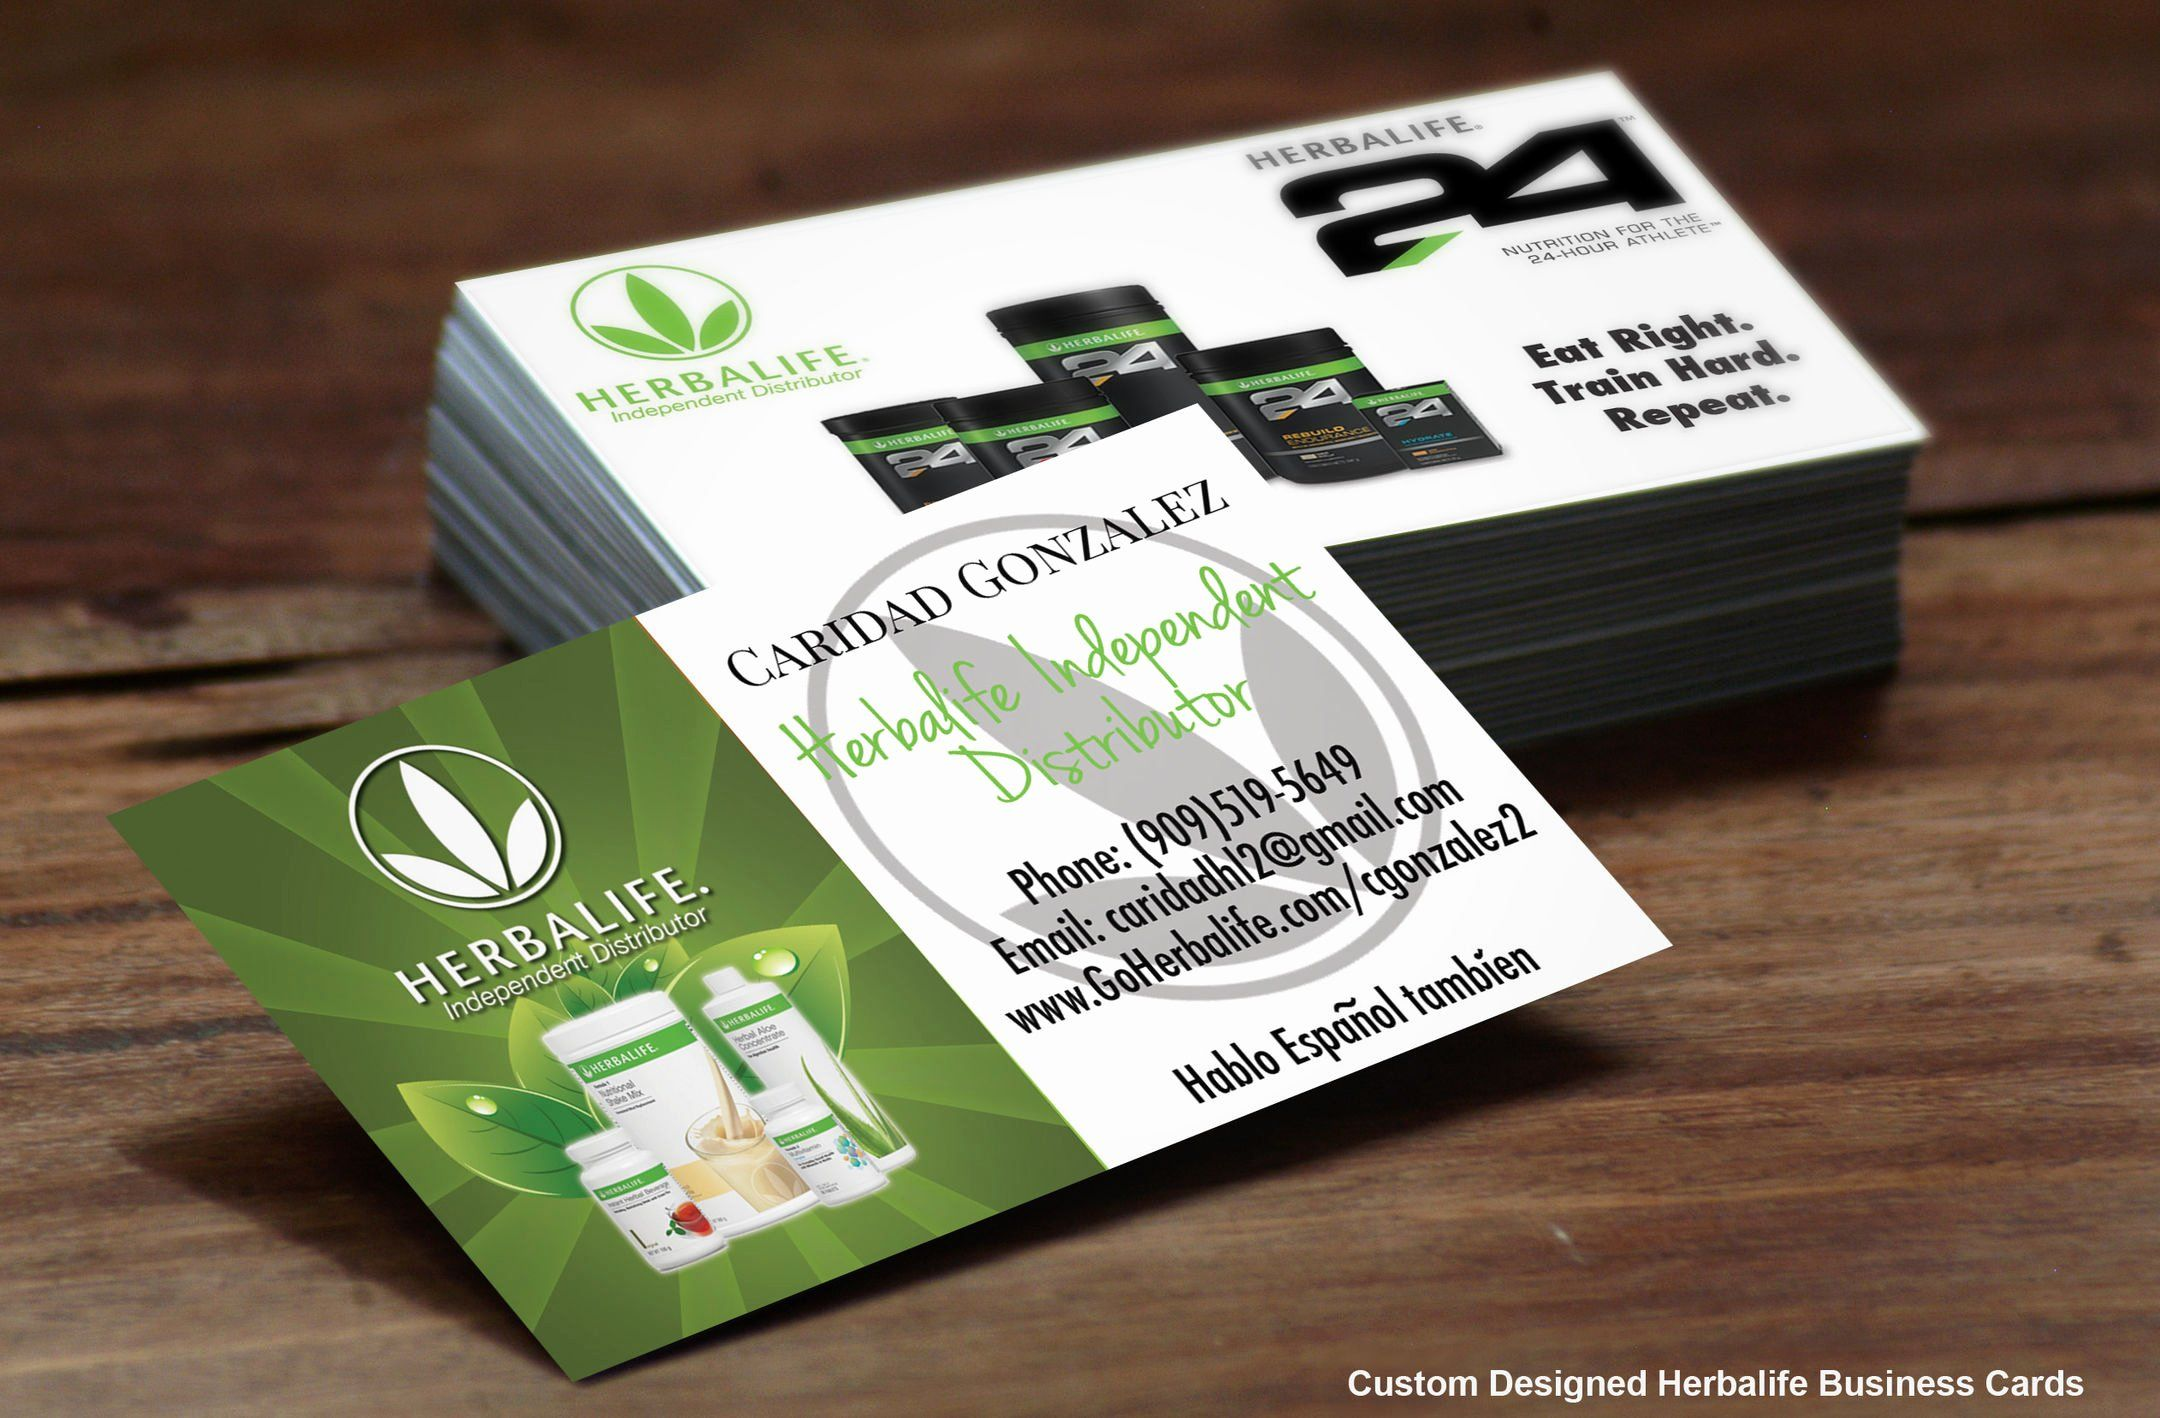 Herbalife Business Card Template Unique Herbalife Independent Distributor Business Herbalife Business Cards Herbalife Business Herbalife Business Cards Design